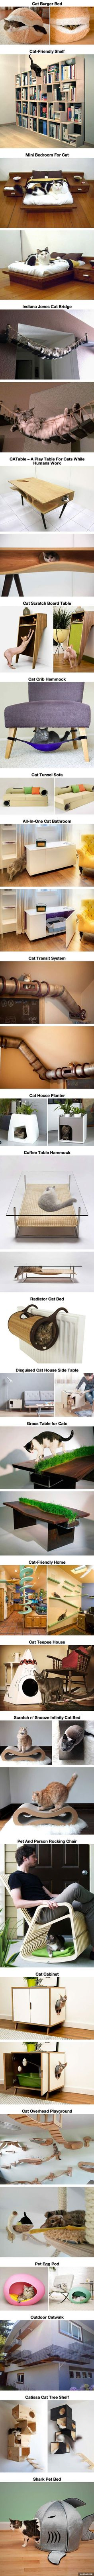 25 Awesome Furniture Design Ideas For Cat Lovers | DailyFailCentral